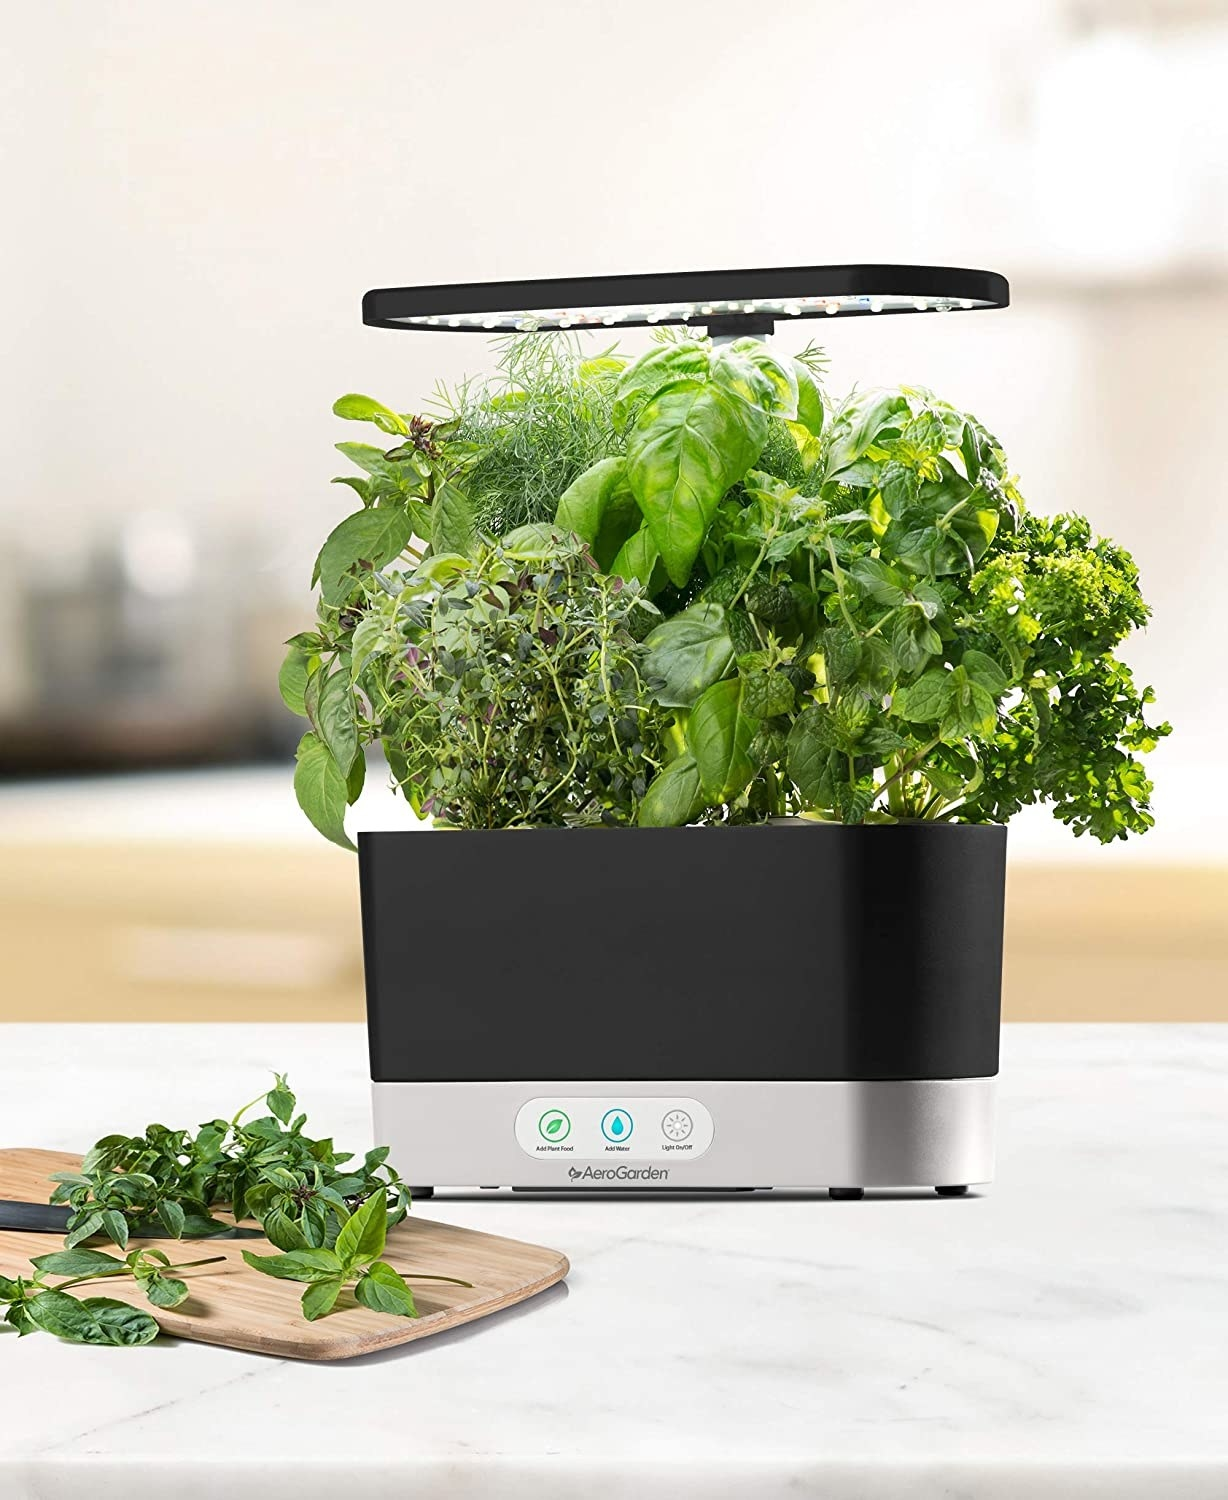 """The product; it has a black oval base """"pot"""" with an oval grow-light that sits above the herbs growing out of the pot. It's growing mint, basil, dill, thyme, and two other herbs"""